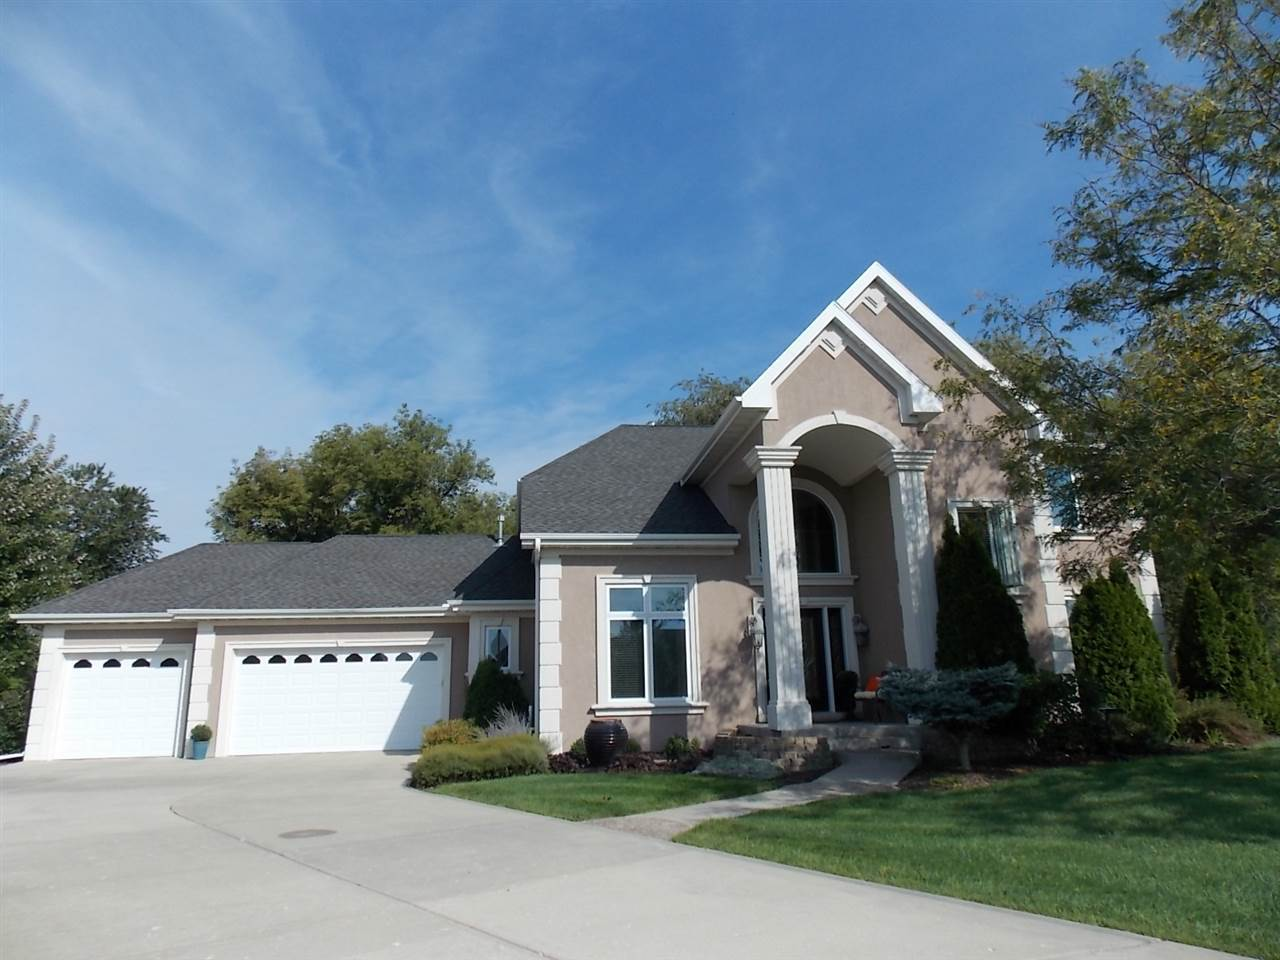 4950  Sumpter Dr, Janesville, WI 53563